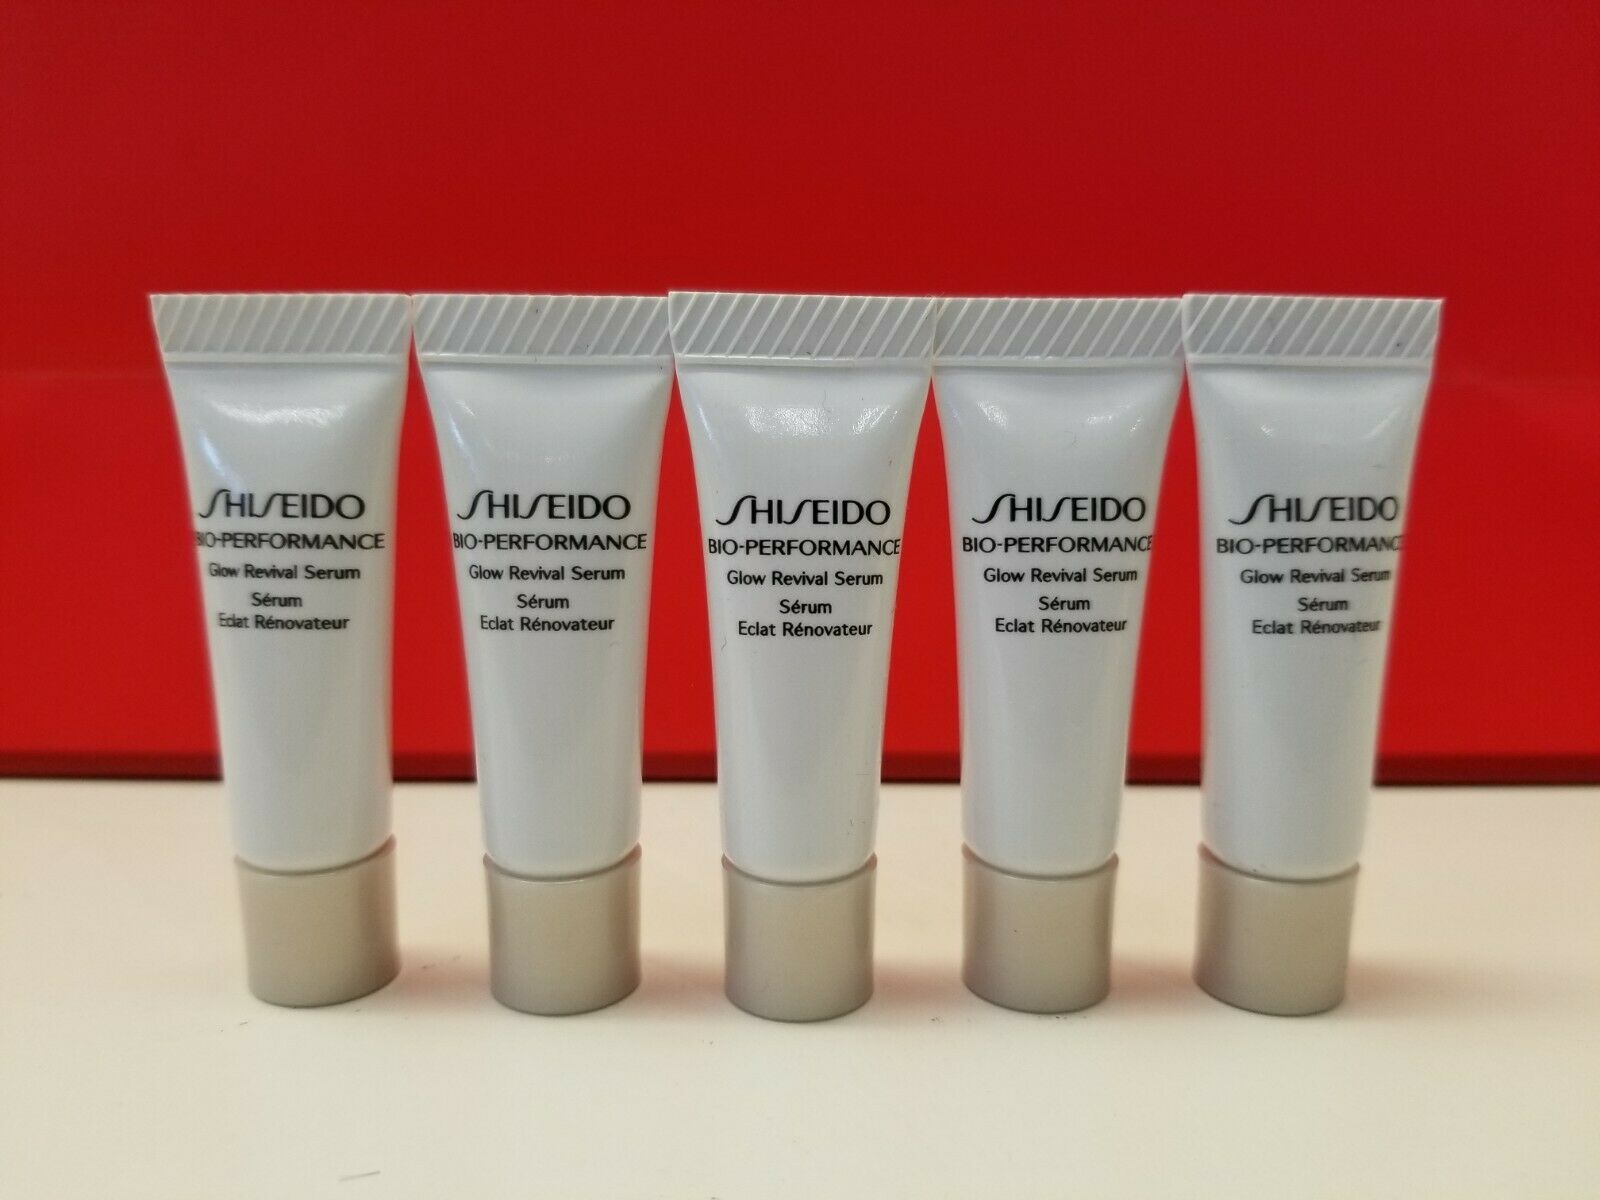 Primary image for Shiseido Glow Revival Serum 2ml x 5 pieces